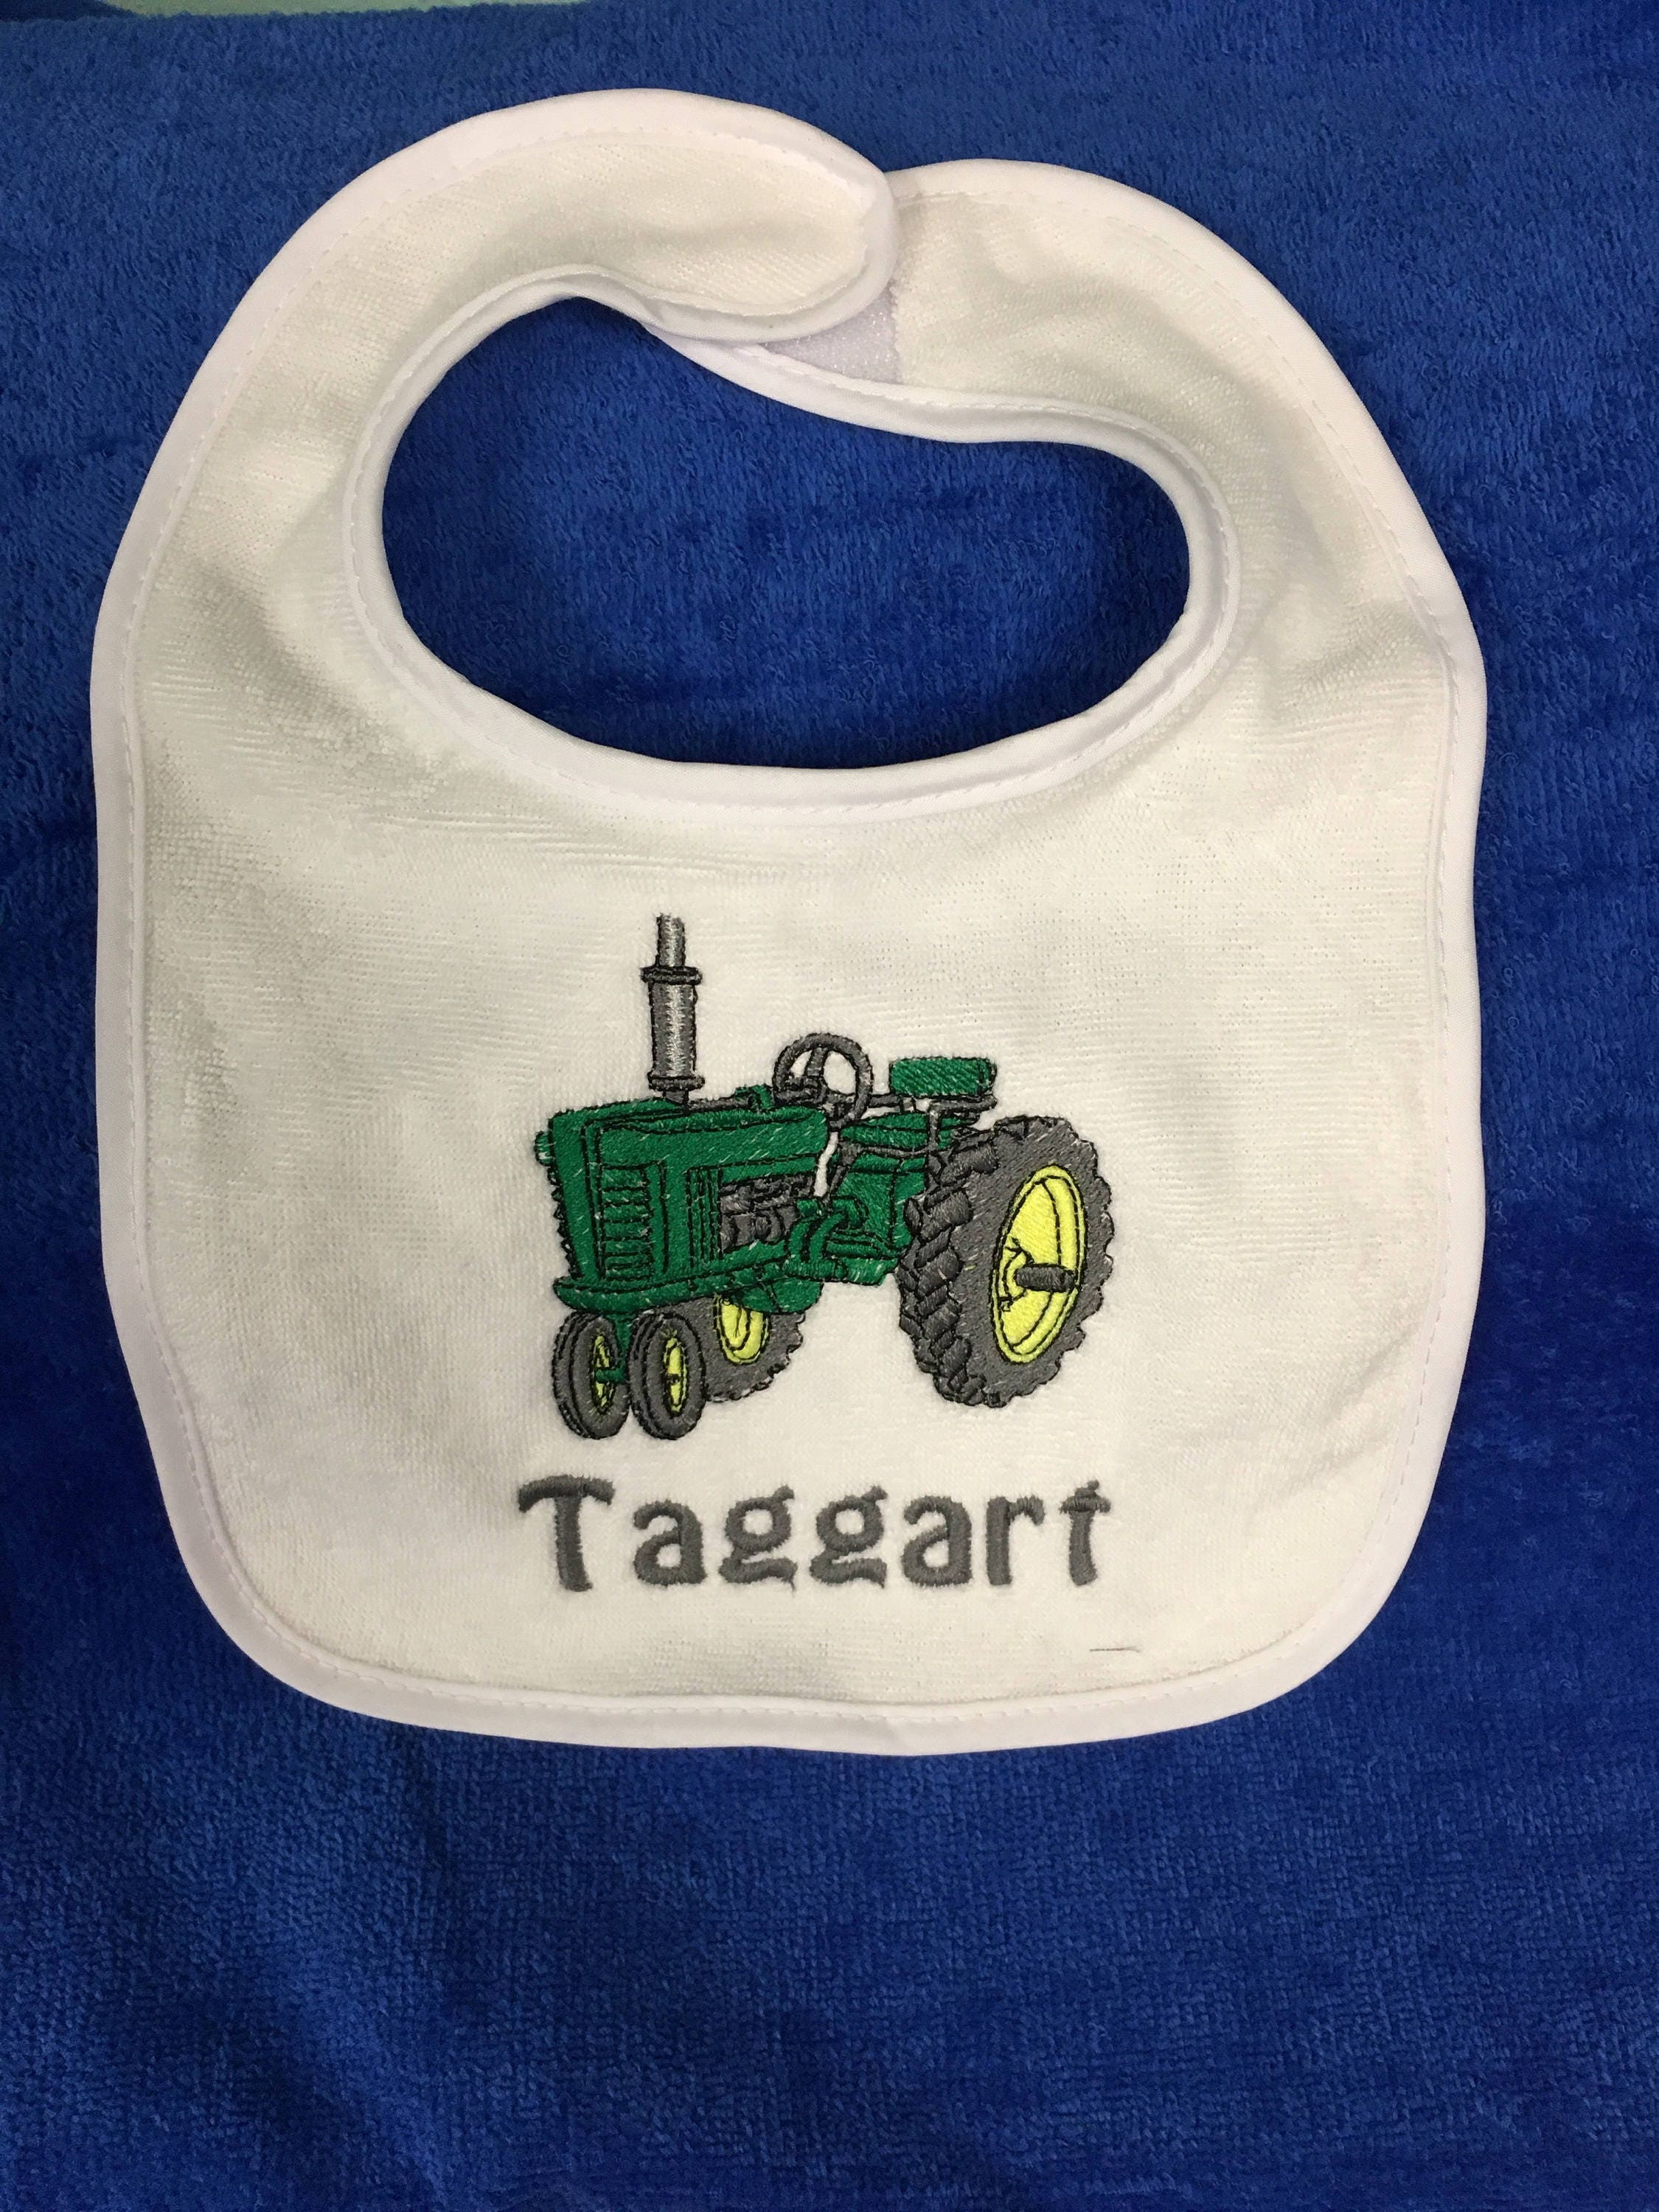 Tractor bib or burp cloth tractor monogram baptism bib tractor bib or burp cloth tractor monogram baptism bib personalized baby bib any design baby gift any thread color bib or burp cloth negle Images